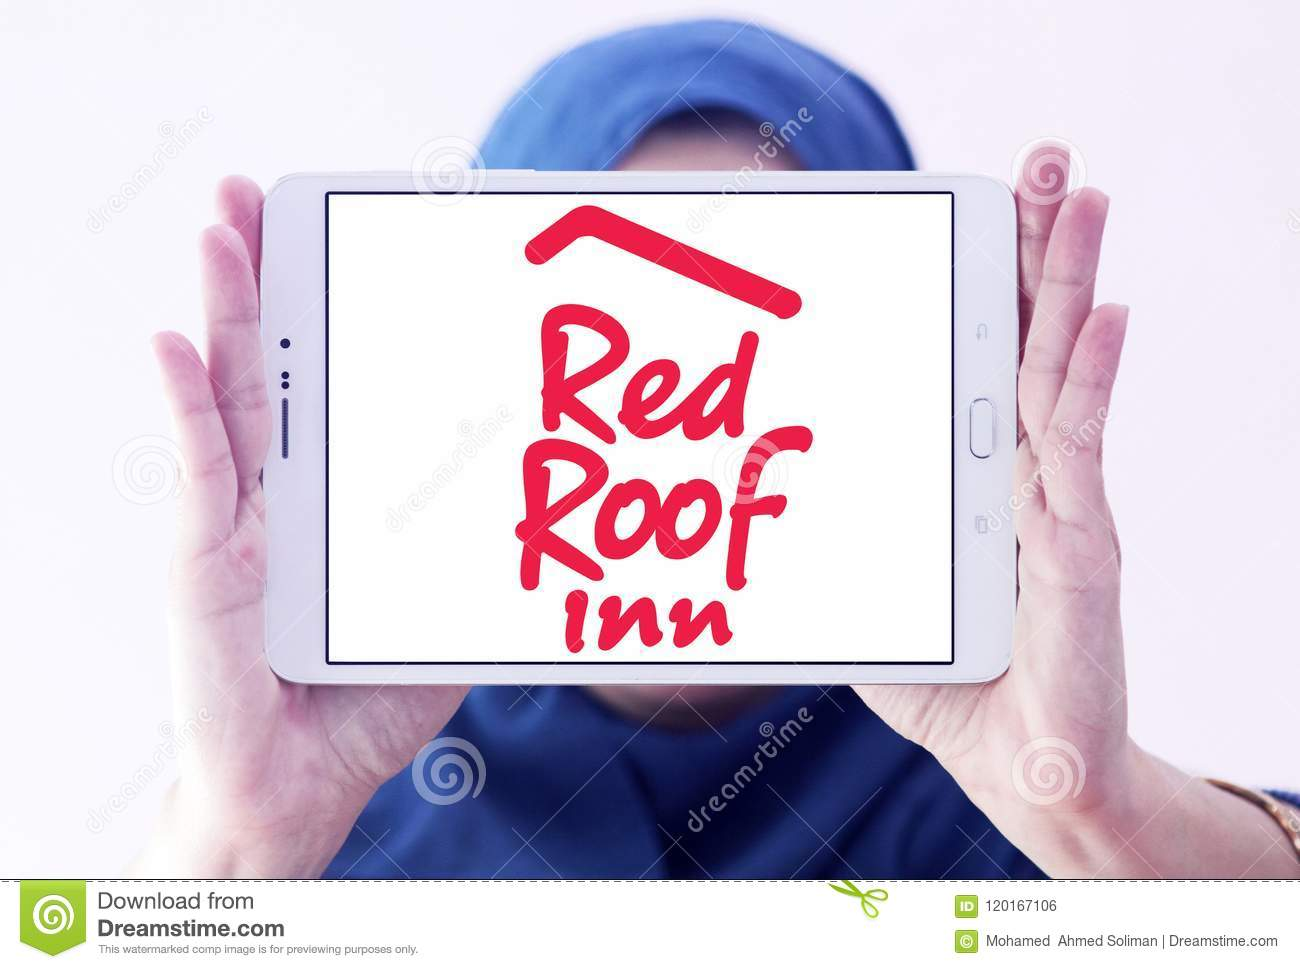 Red Roof Inn logo editorial photo  Image of company - 120167106